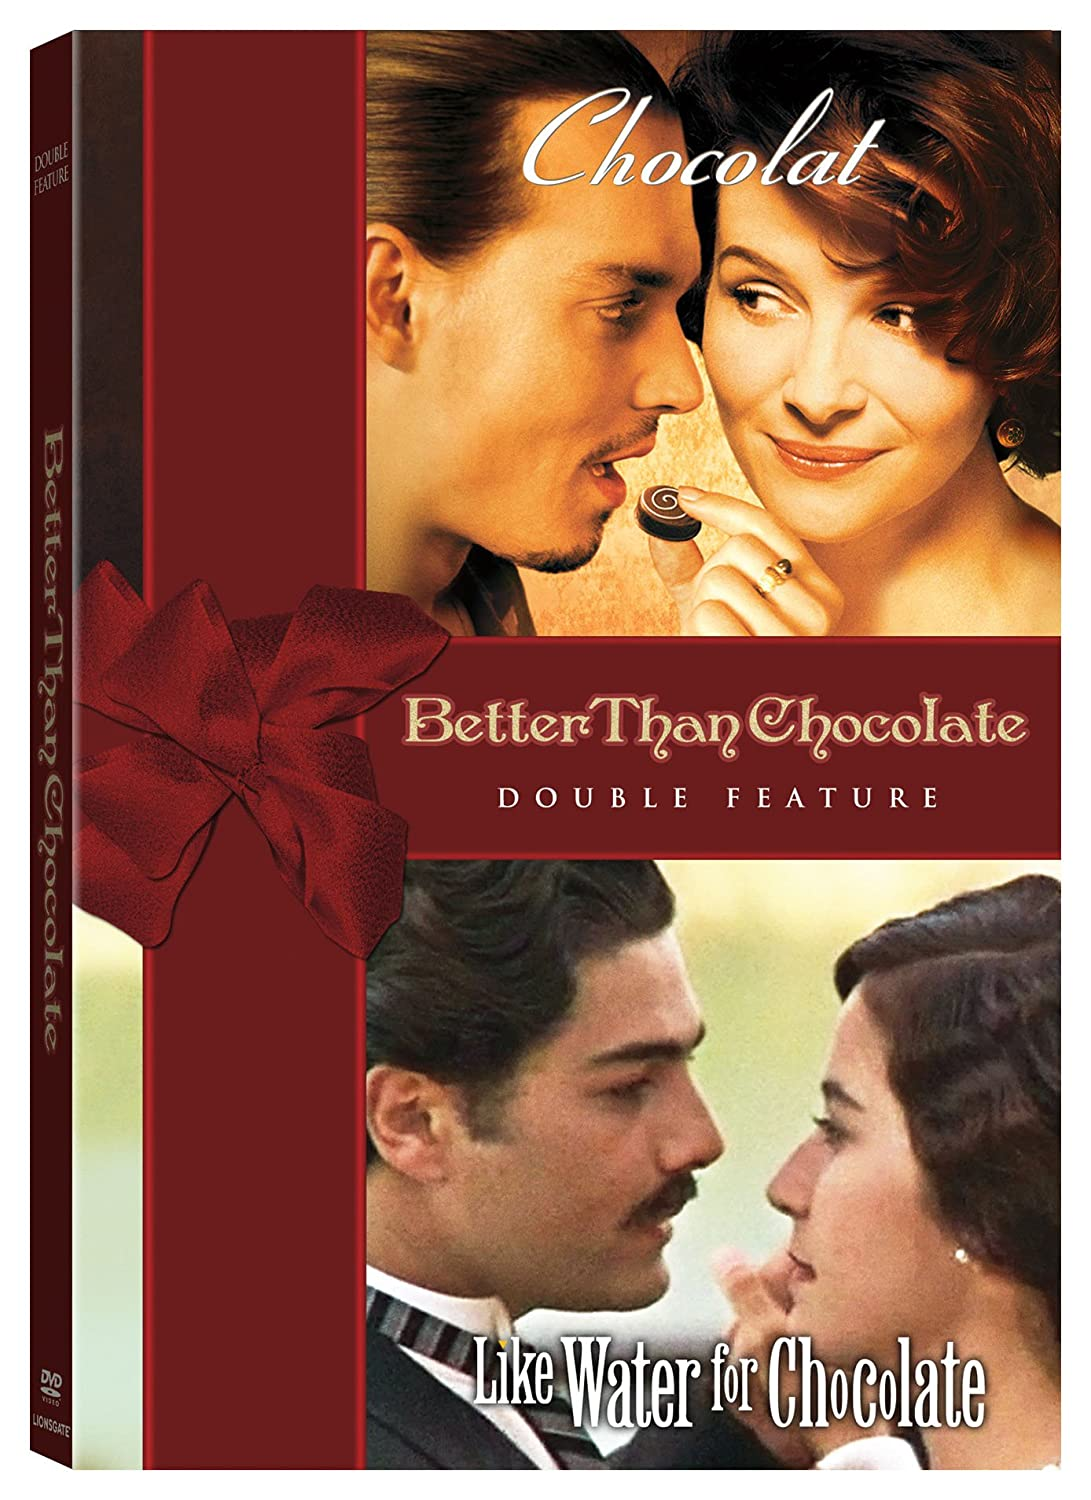 Amazon.com: Better Than Chocolate Double Feature [DVD]: Better ...